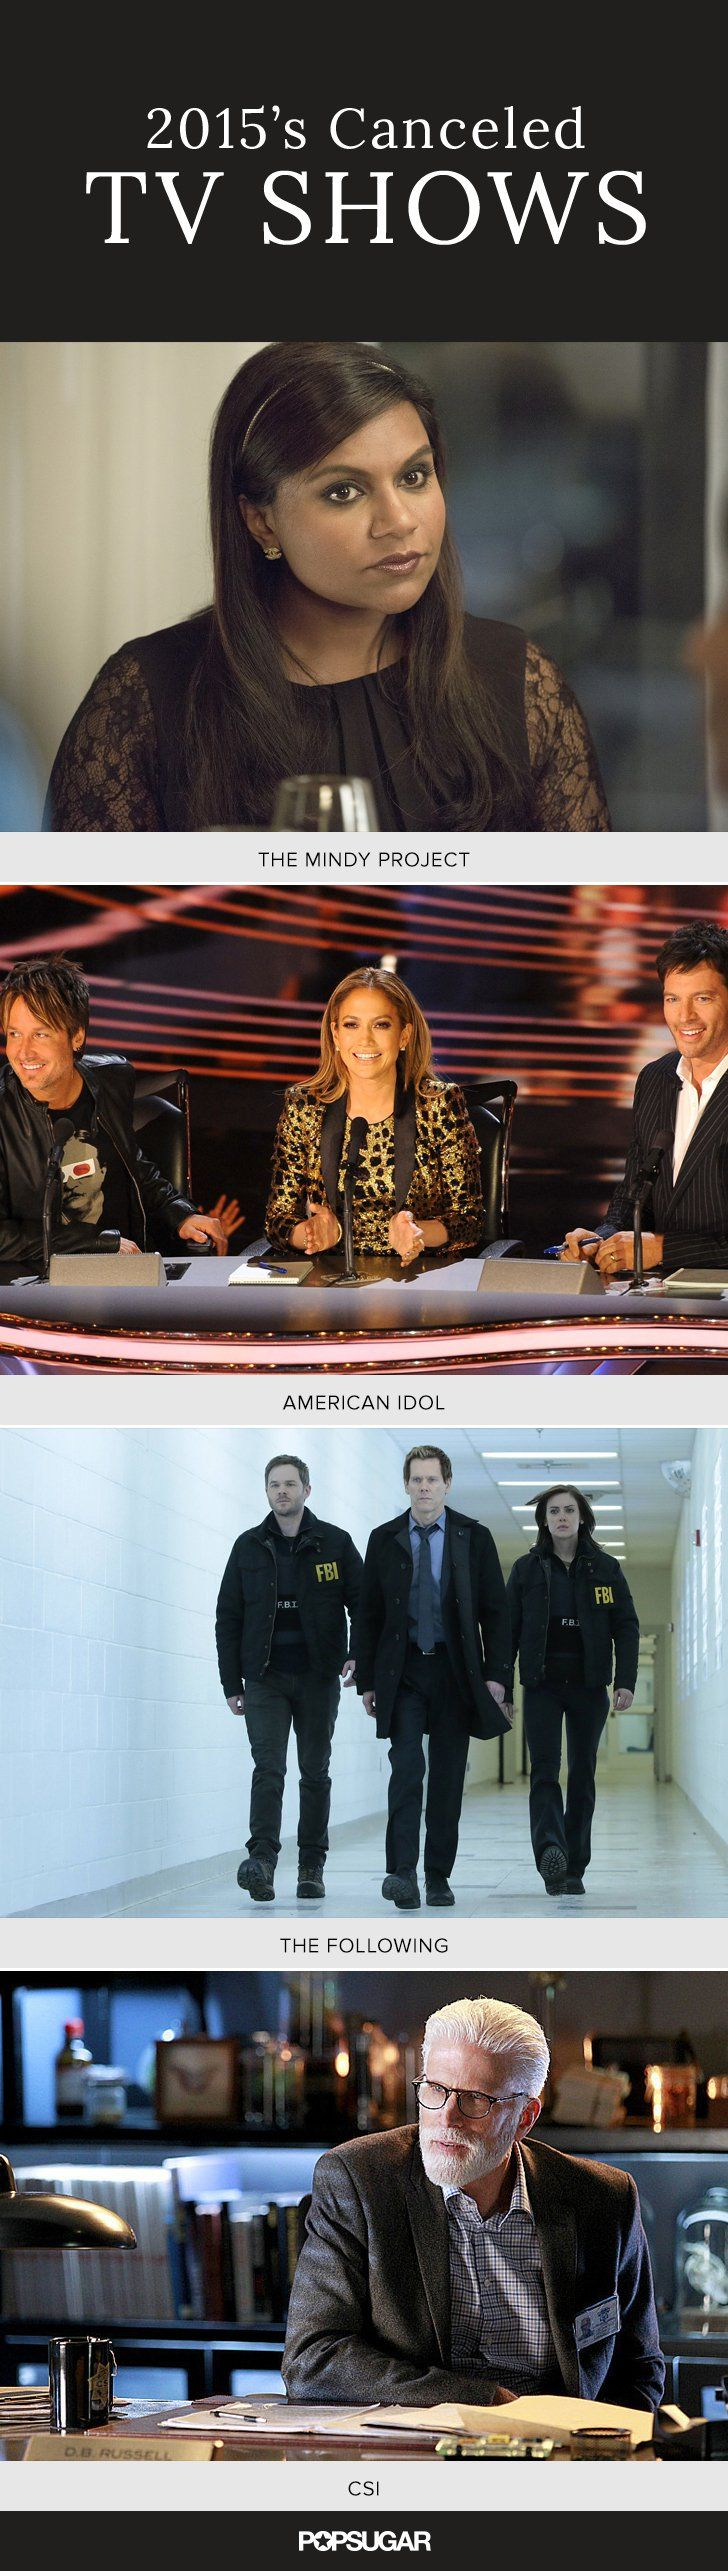 Pin for Later: 22 TV Shows That Were Canceled This Season Canceled TV Show Scorecard